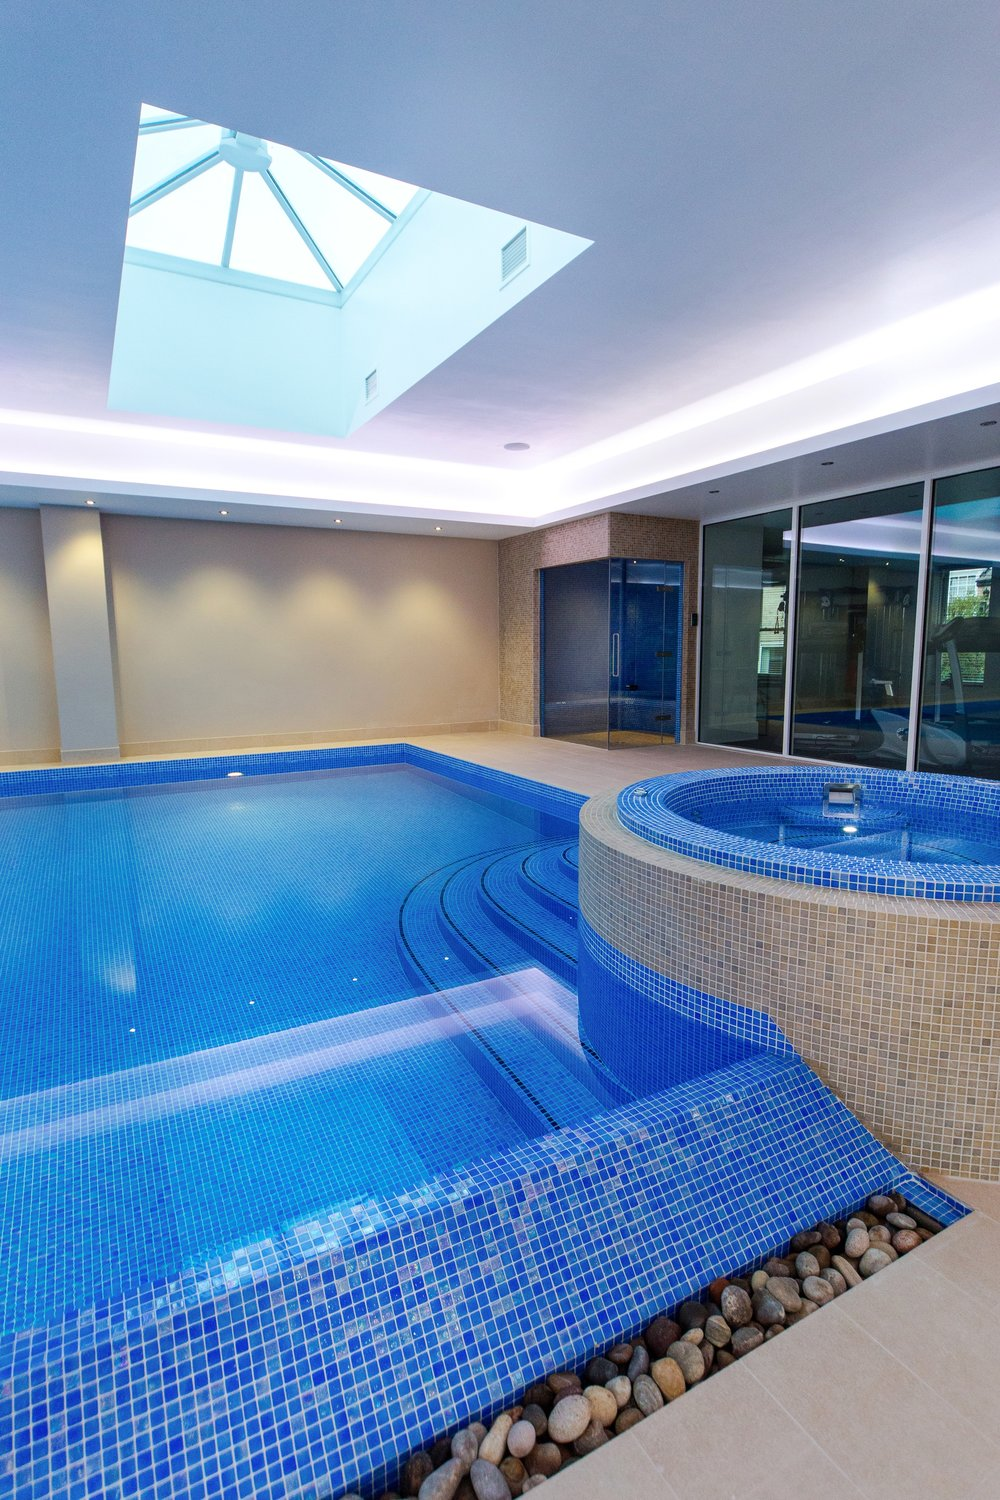 leeds_commercial_events_photographer_james_arnold_jarnold_Grayfox_Swimming_Pools_0002.jpg